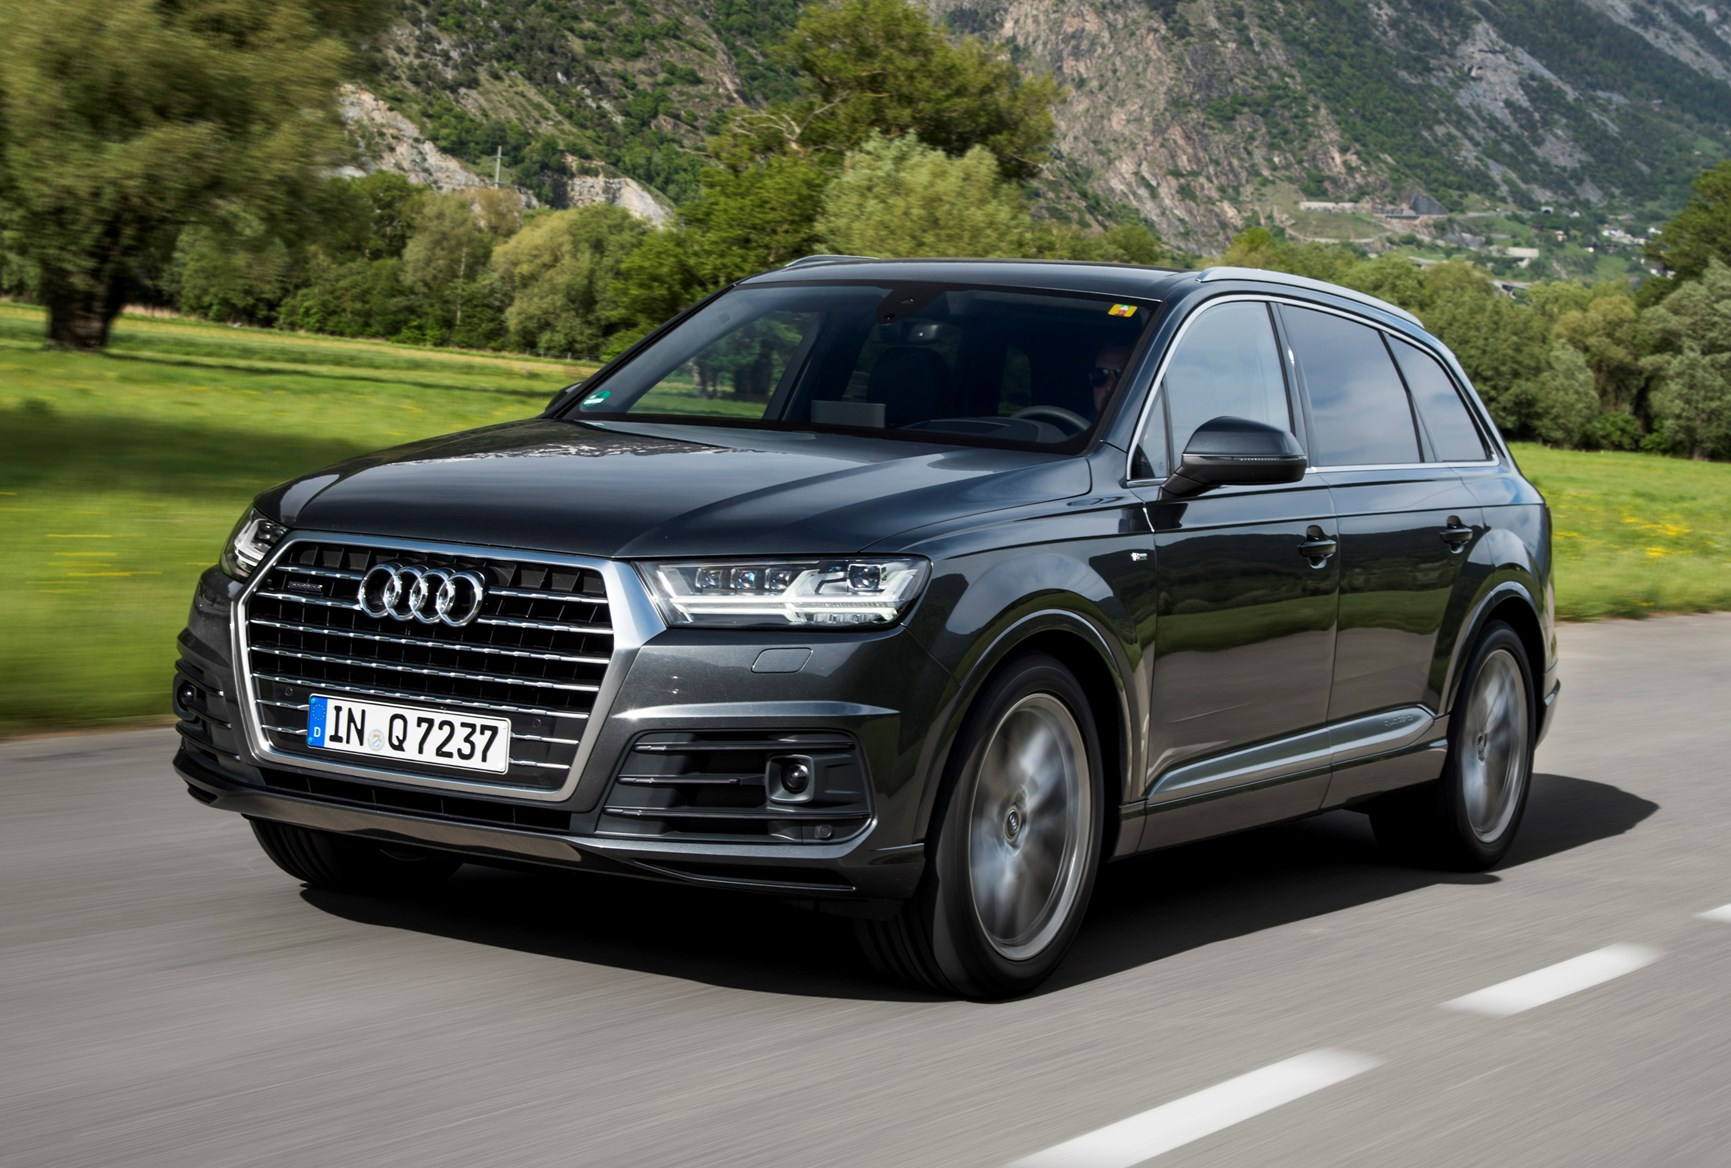 Audi Q7 For Sale Used Audi Q7 Cars Parkers | Autos Post